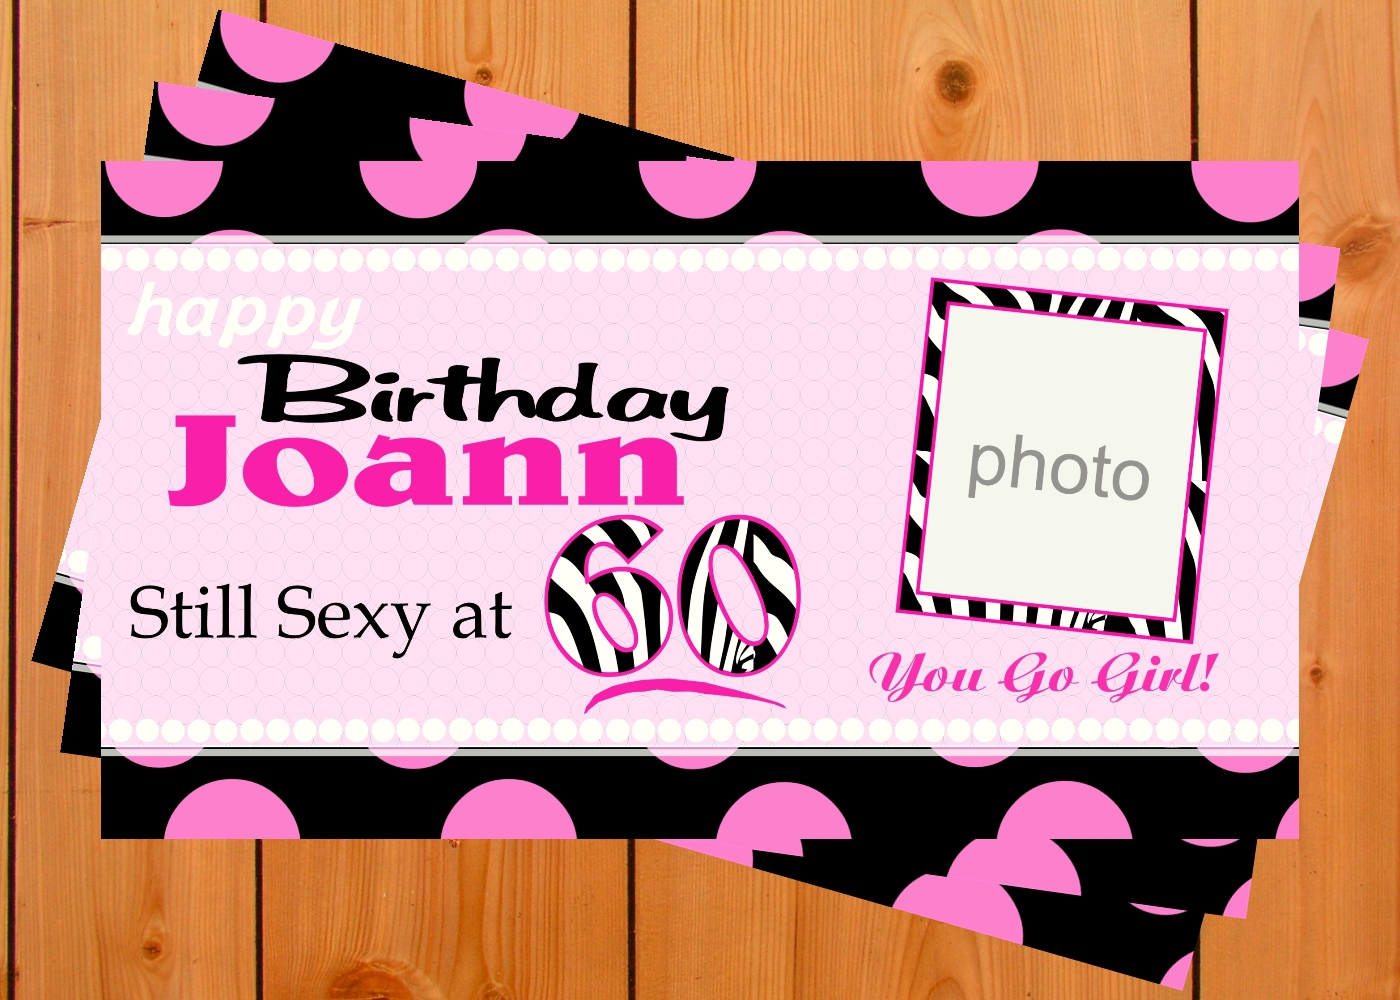 Banner display wood background design1 sixty photo